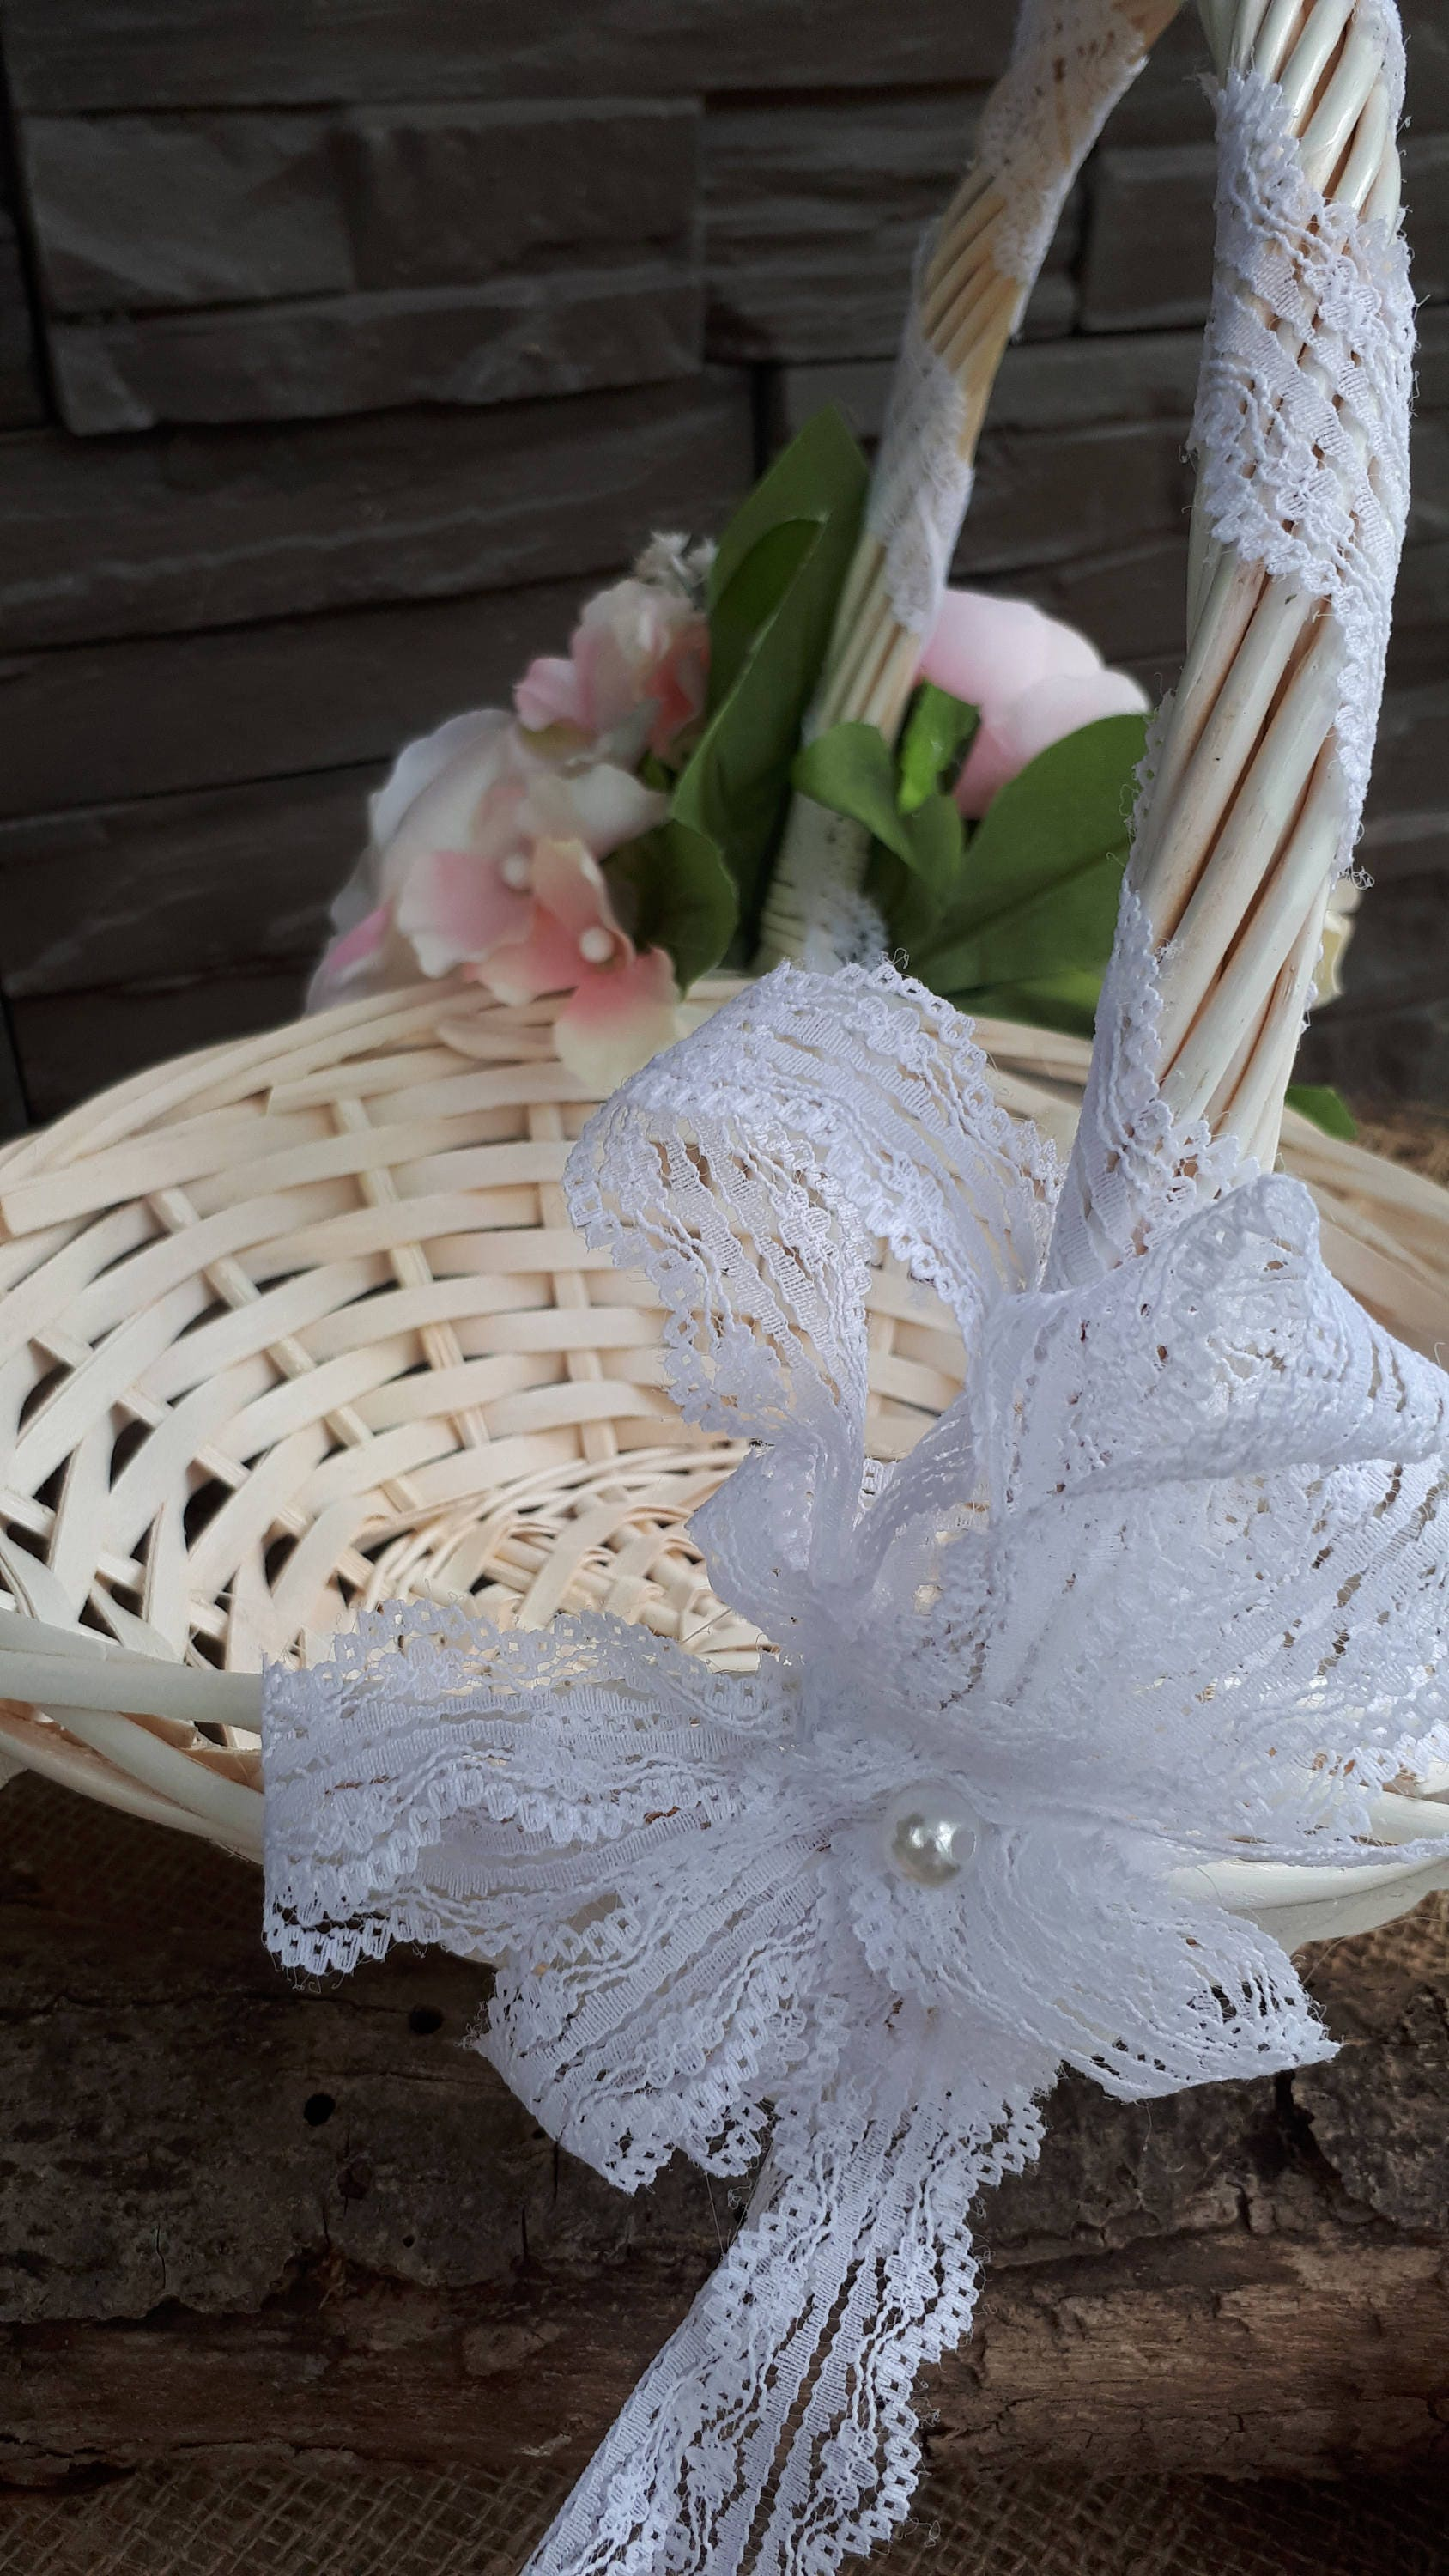 Rustic Wedding Bridesmaid Basket England Oval White Wicker Shabby Chic Victorian Confetti